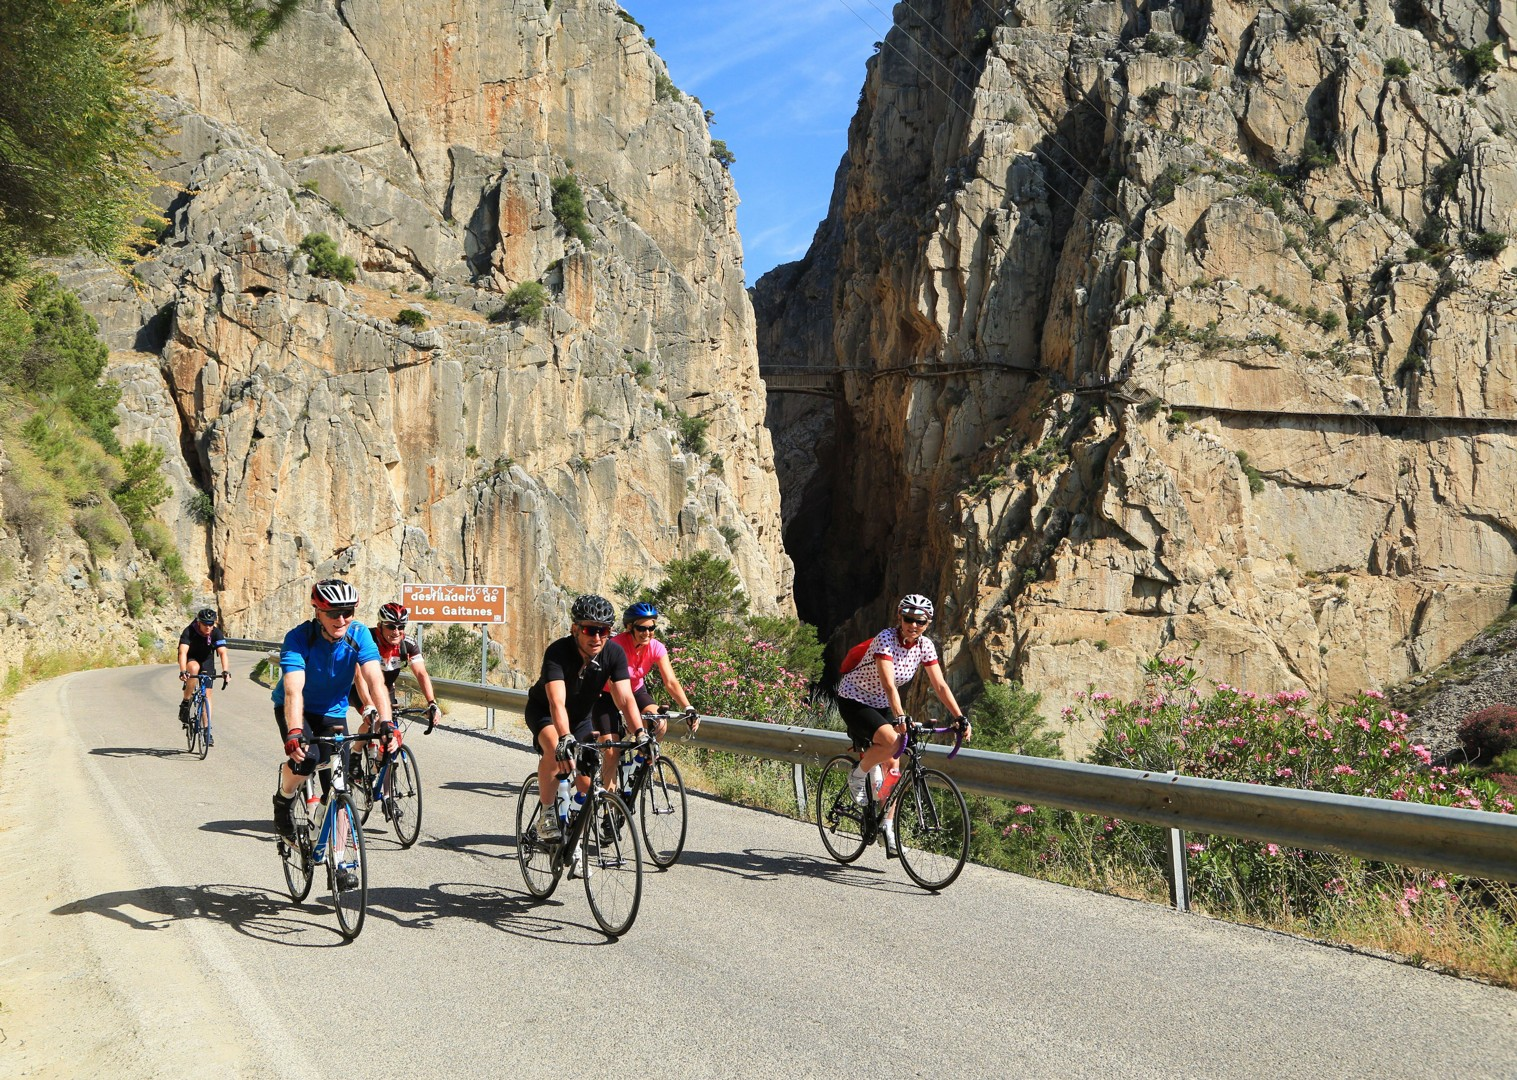 road-cycling-adventure-through-basque-country.jpg - Spain - Basque Country to Andalucia - North to South - 16 Day - Guided Road Cycling Holiday - Road Cycling